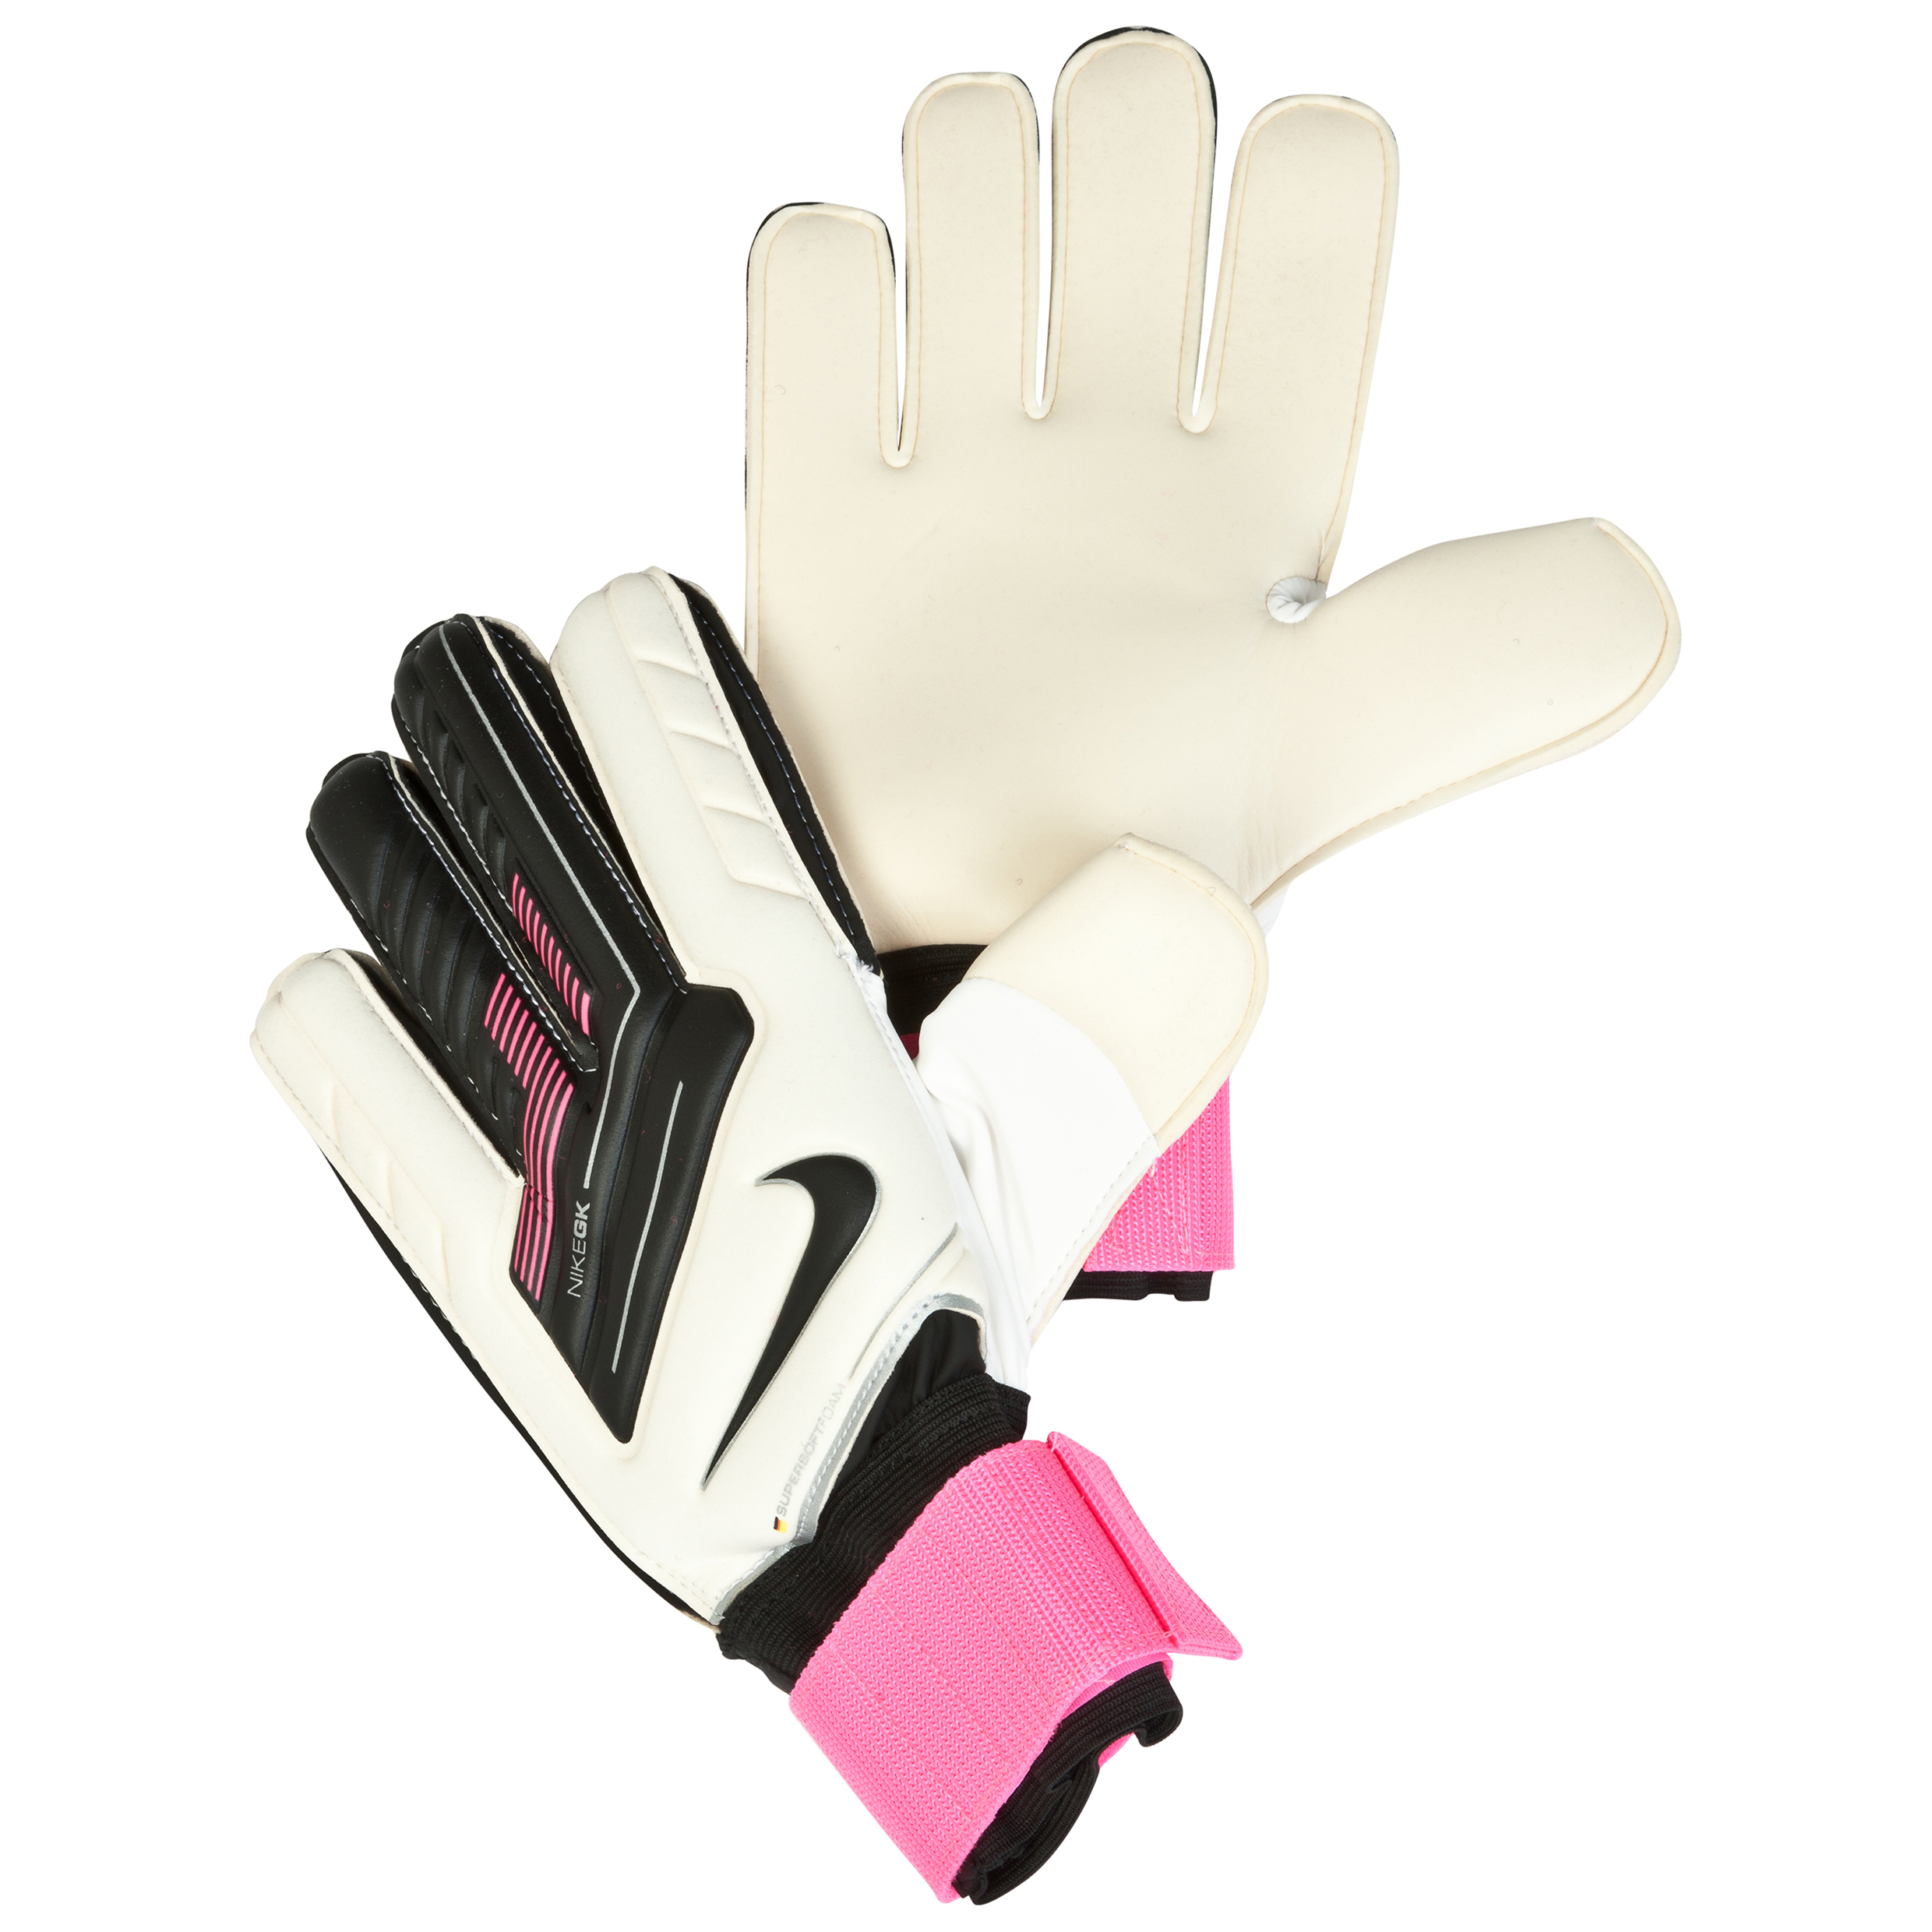 Nike Spyne Pro Goalkeeper Gloves - White/Pink Flash/Black